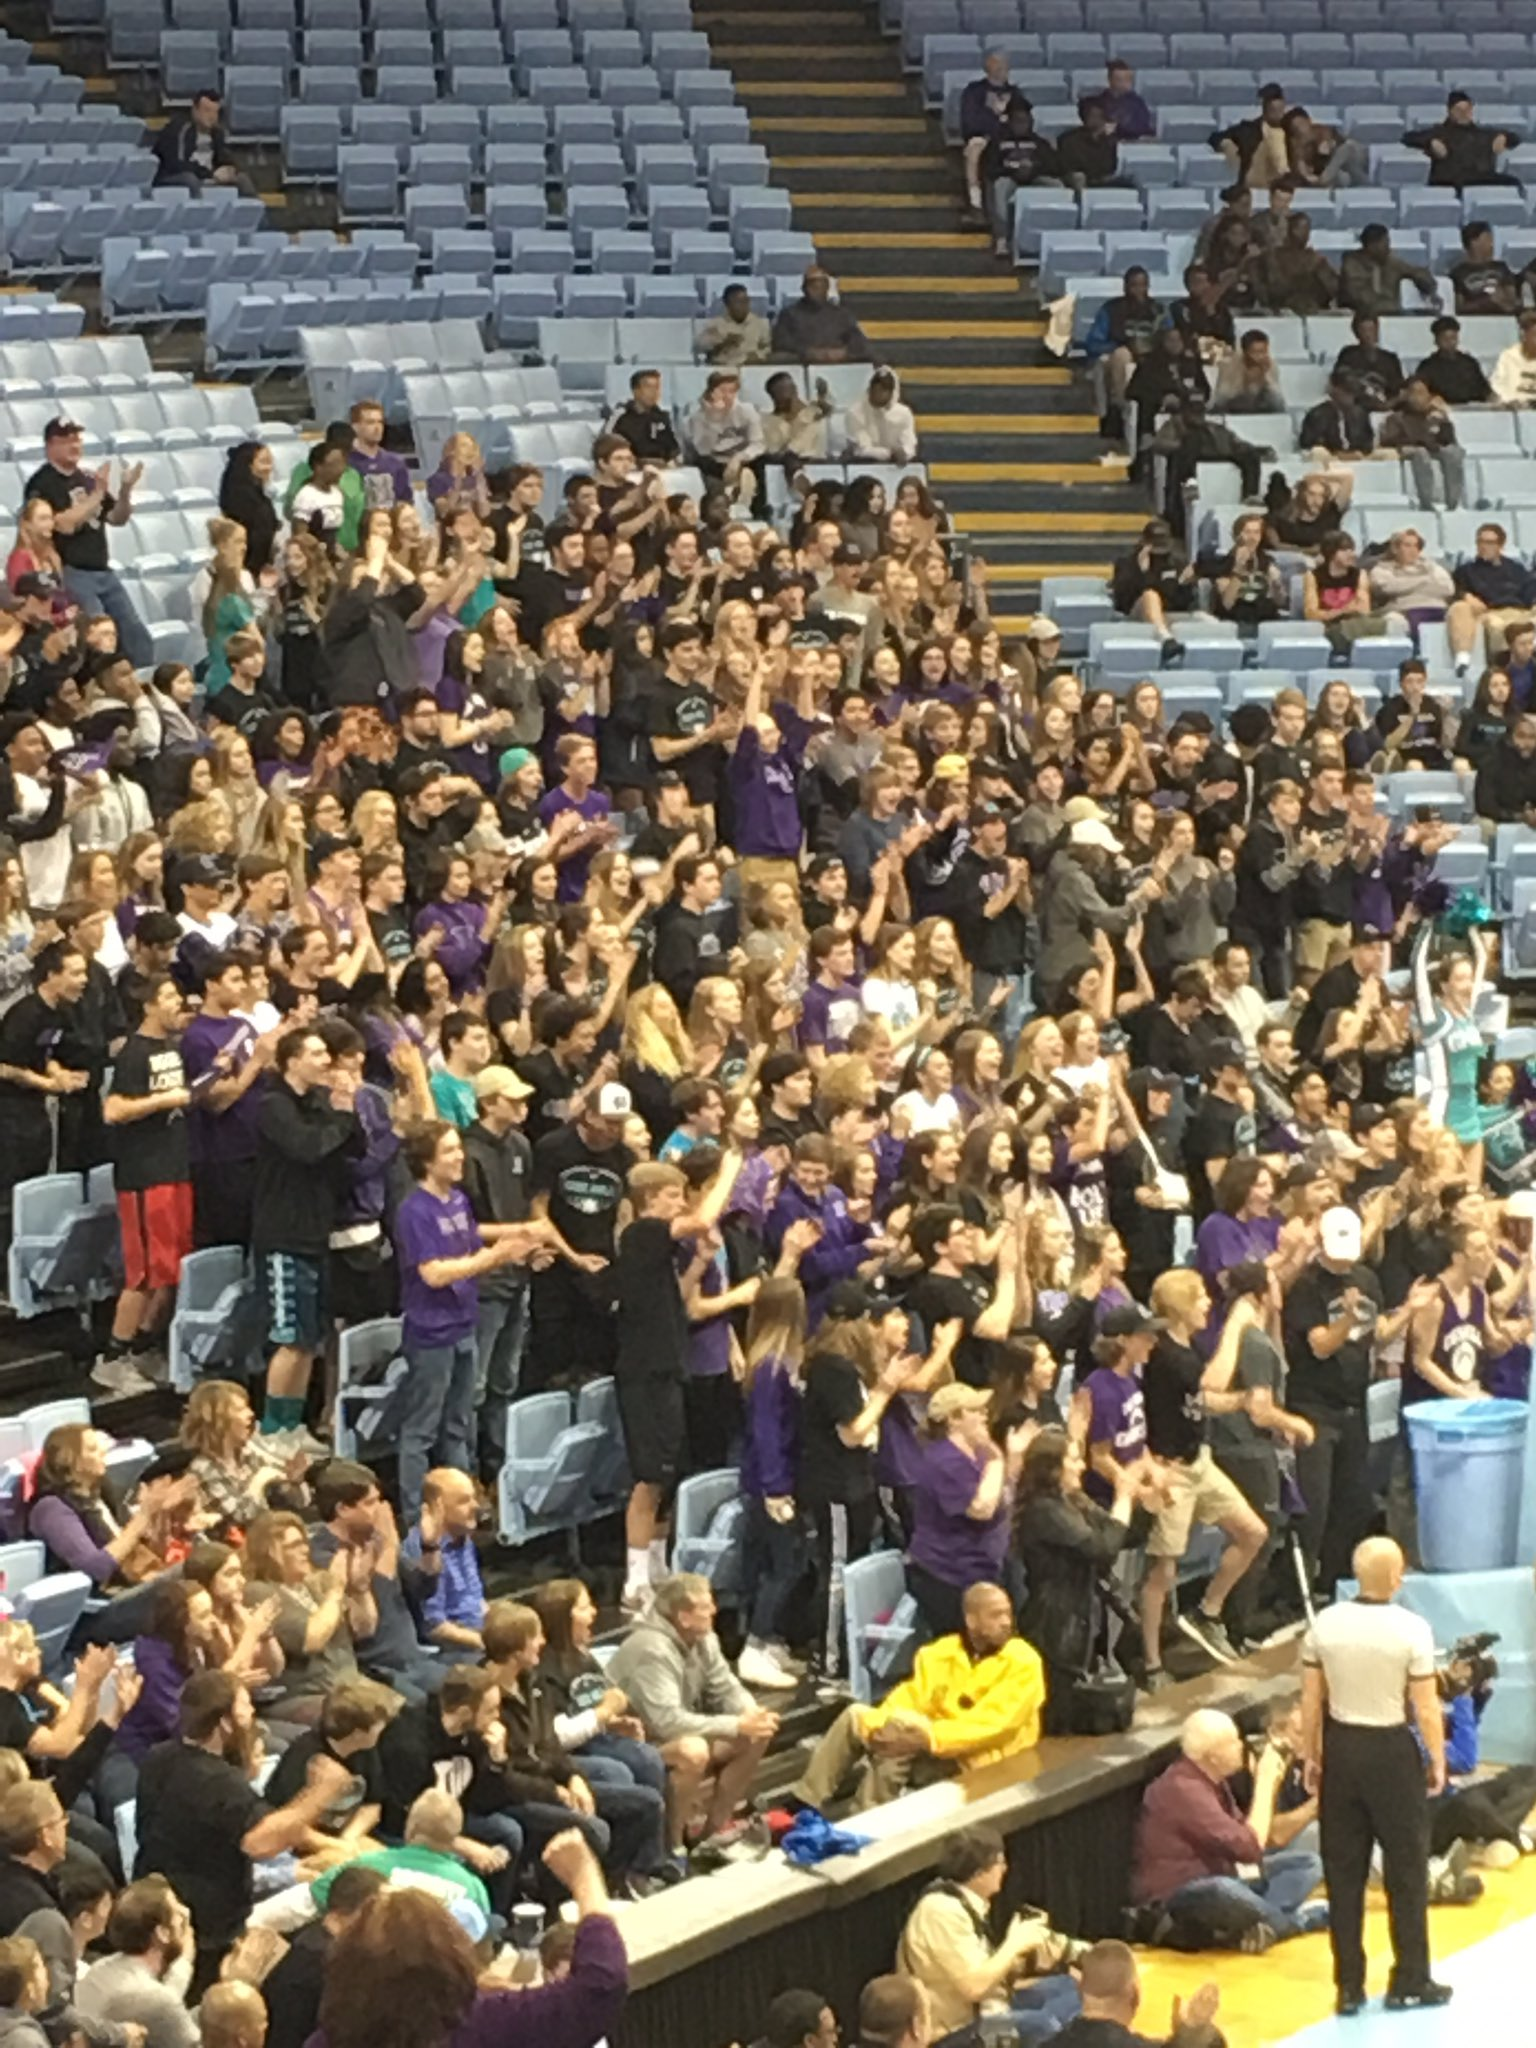 Way to represent Cox Mill student section! @CMManiacs @CMHS_Athletics @CoxMillHS https://t.co/NQvtkHeB0h